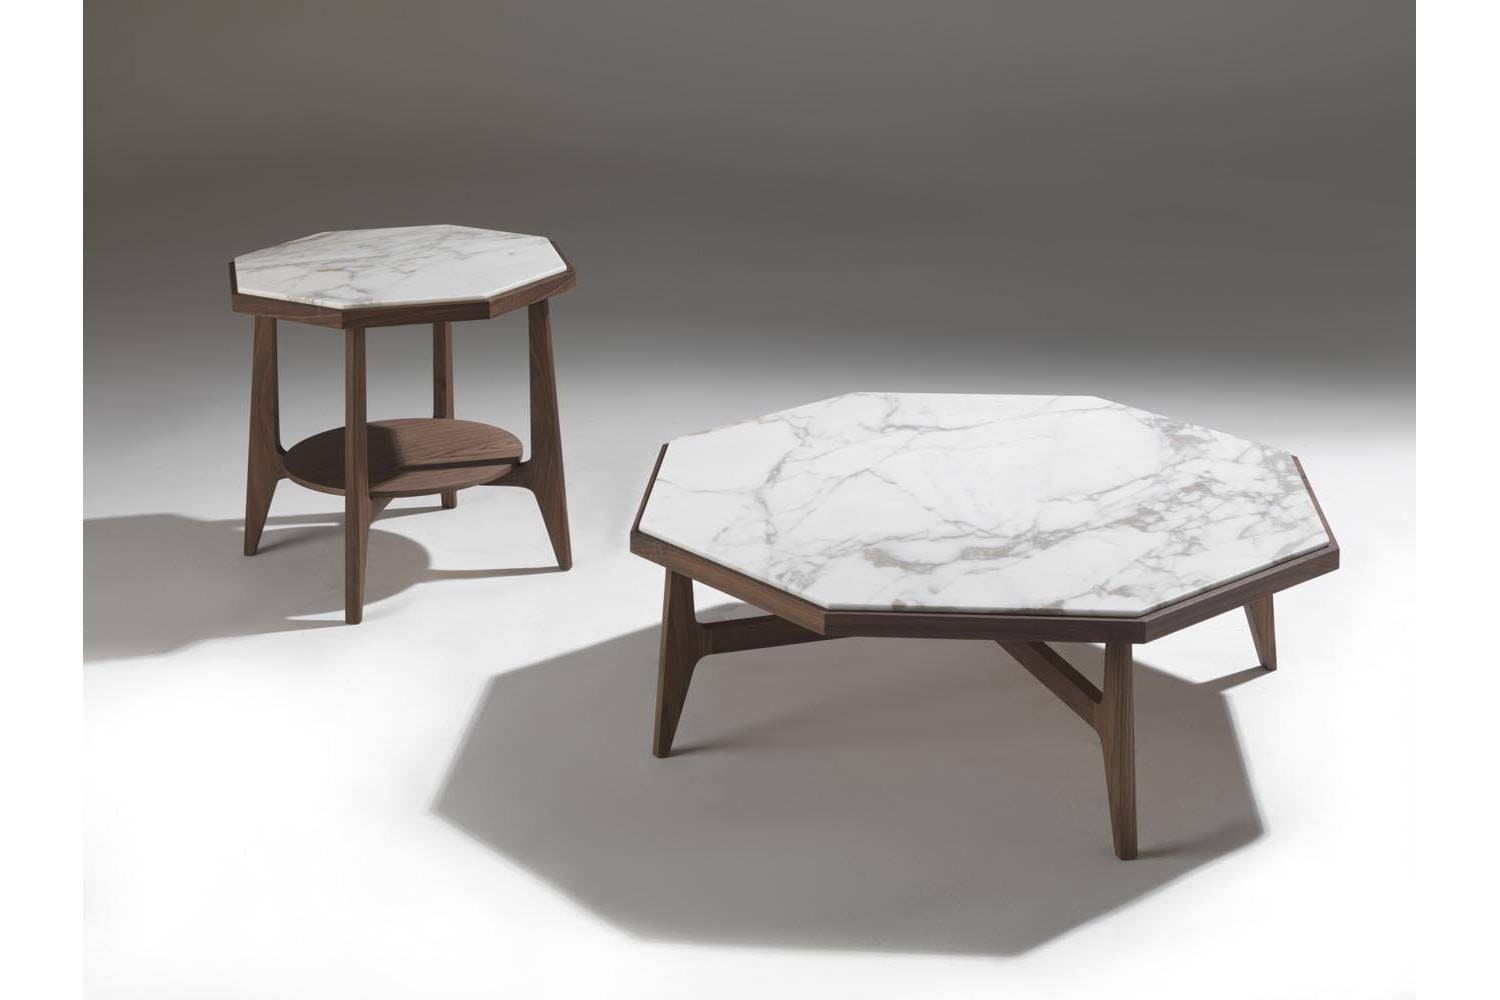 Marrakesh Coffee Table by E. Garbin - M. Dell'Orto for Porada